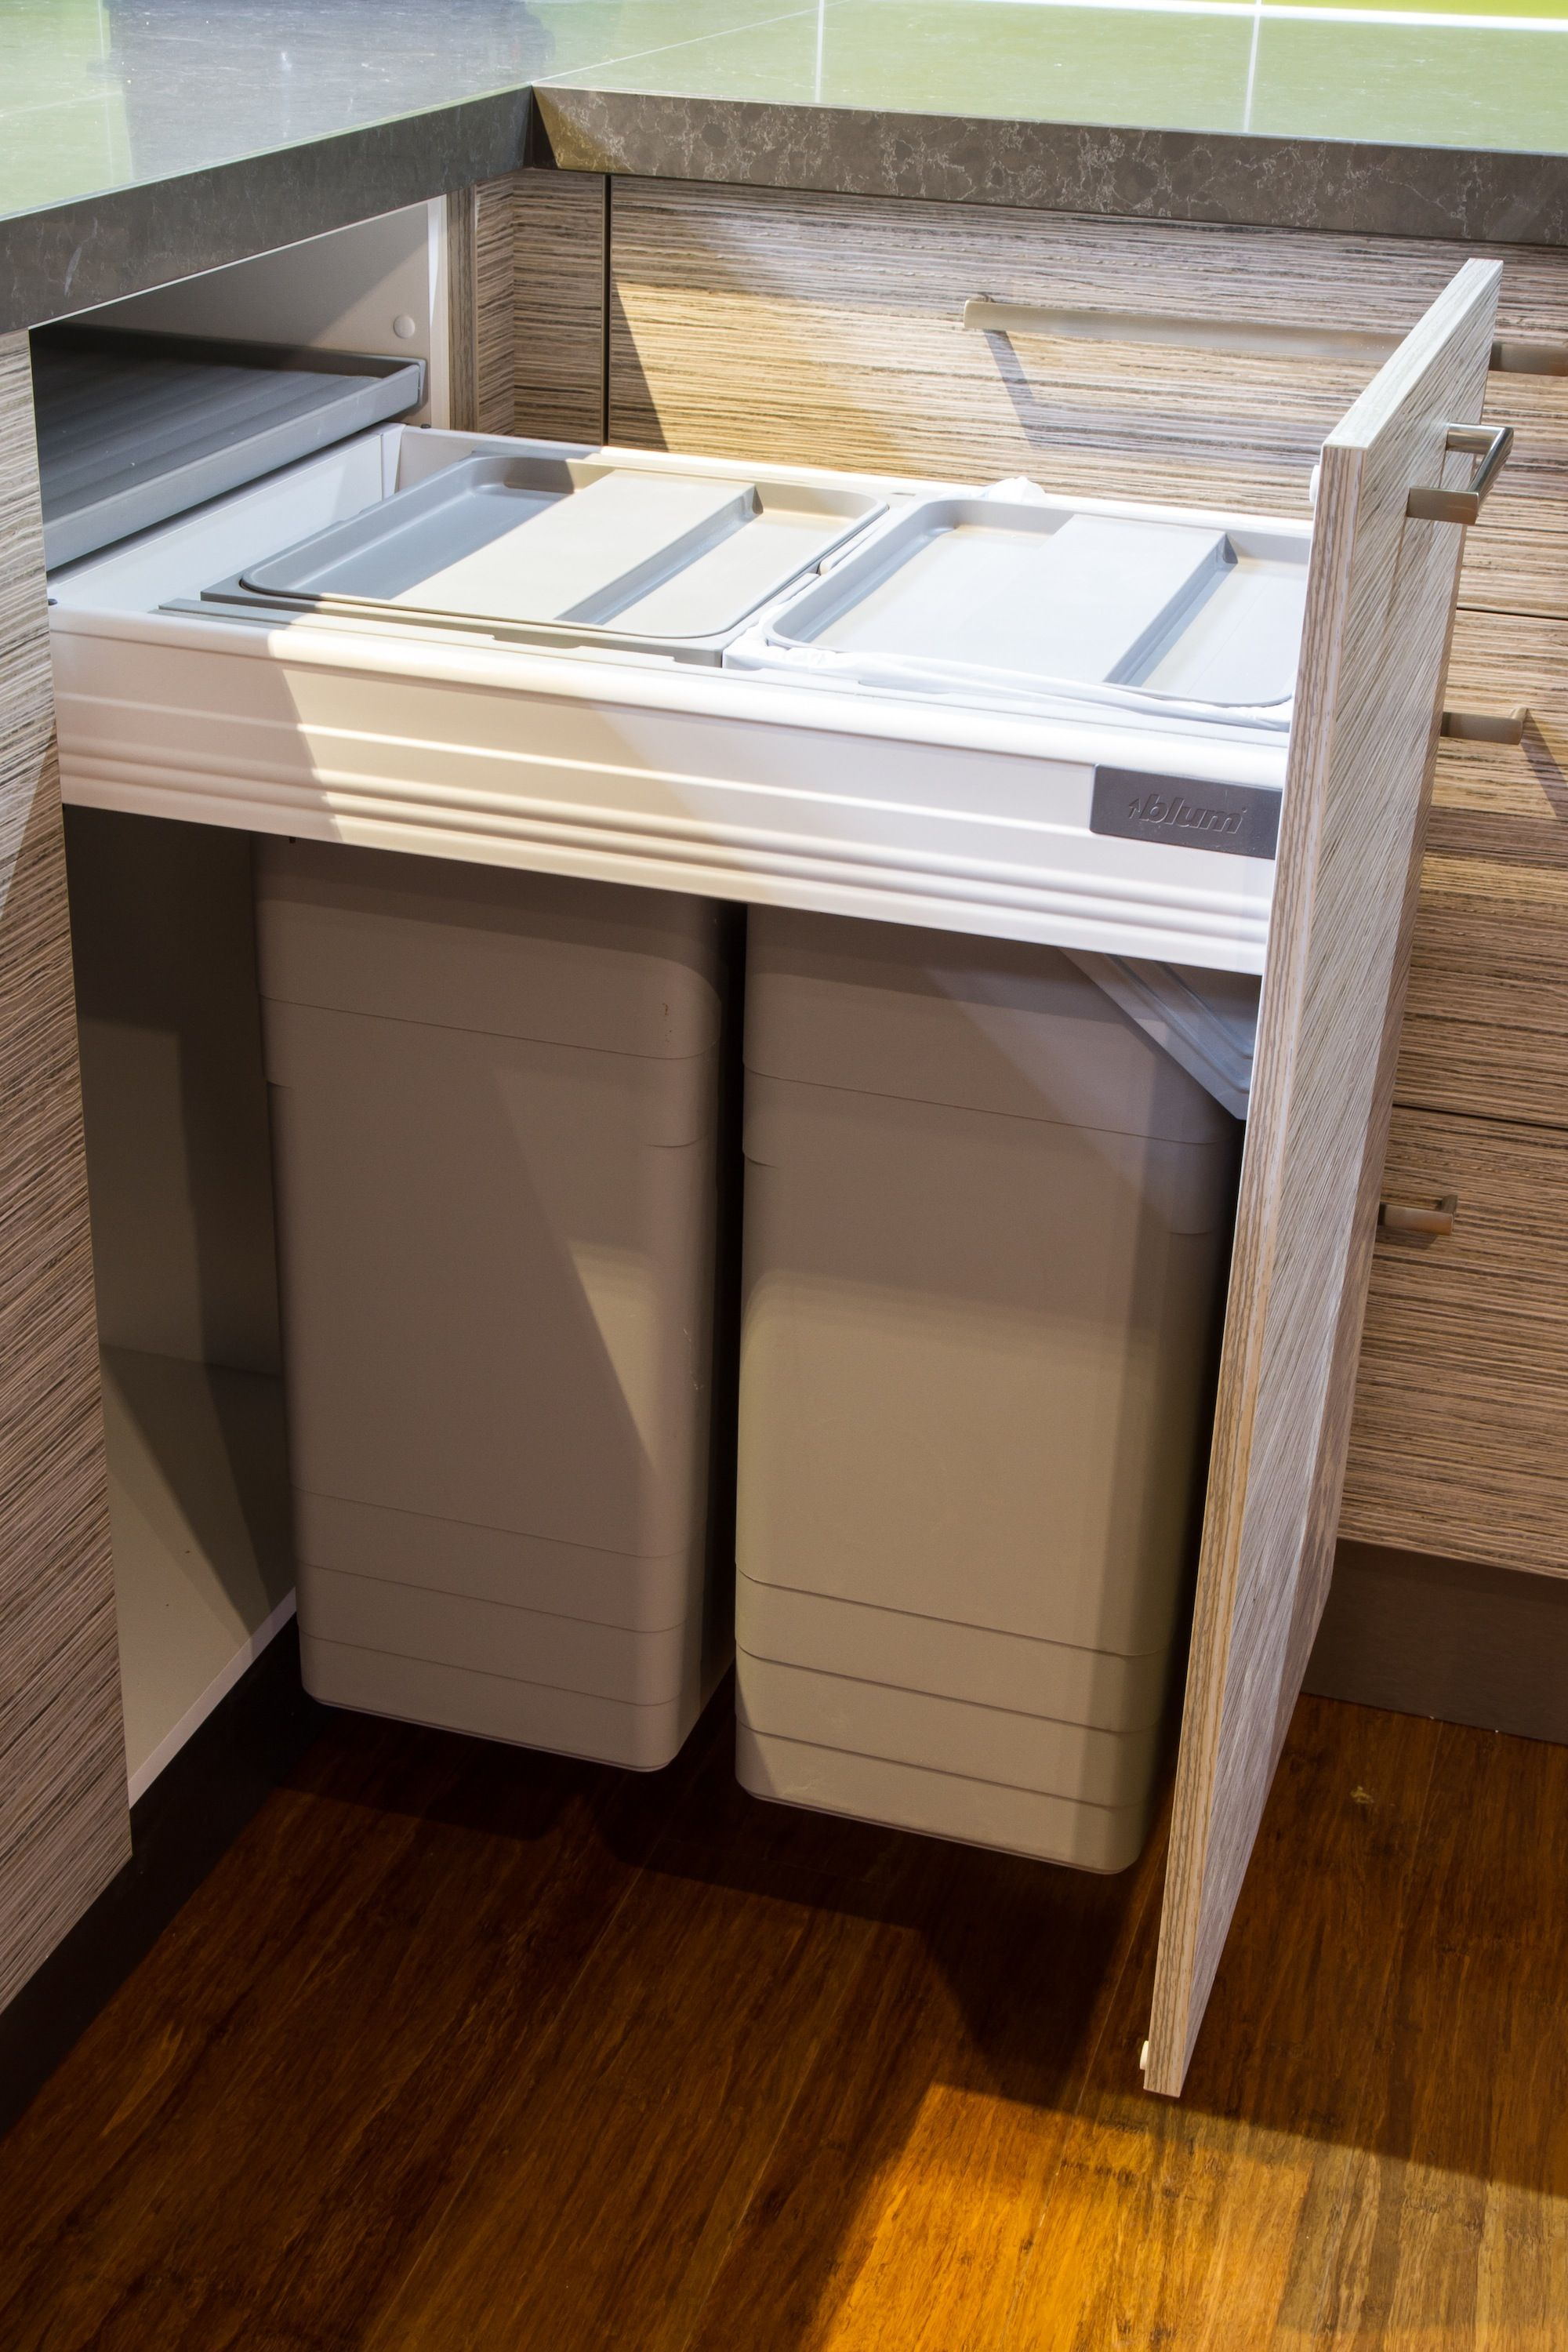 Bin Drawer Small Contemporary Kitchen Hafele Bins Blum